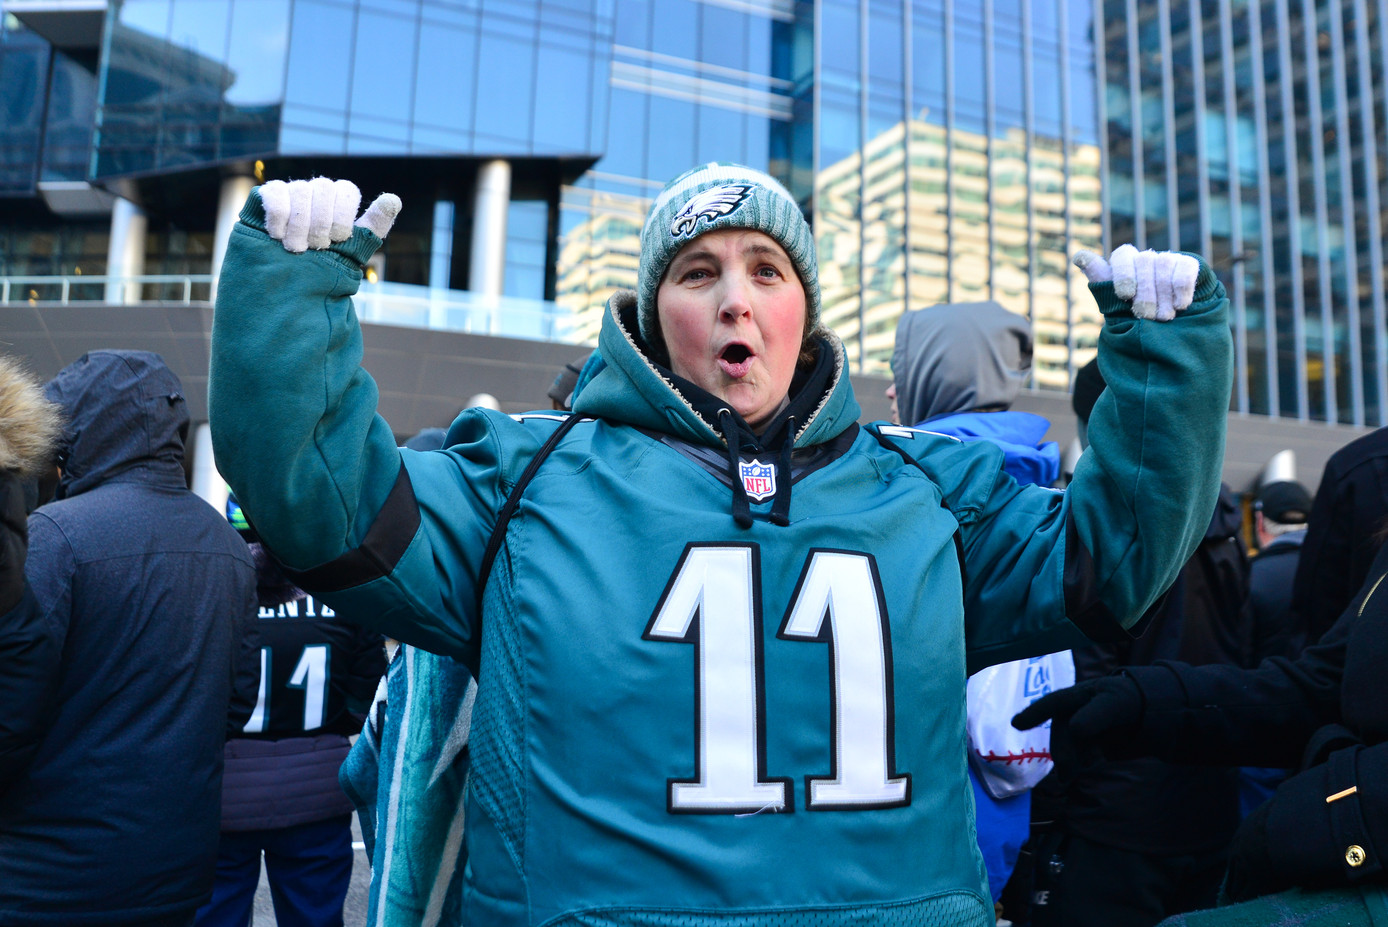 2-8-2018_EaglesParade_03_Mary_credKateFr